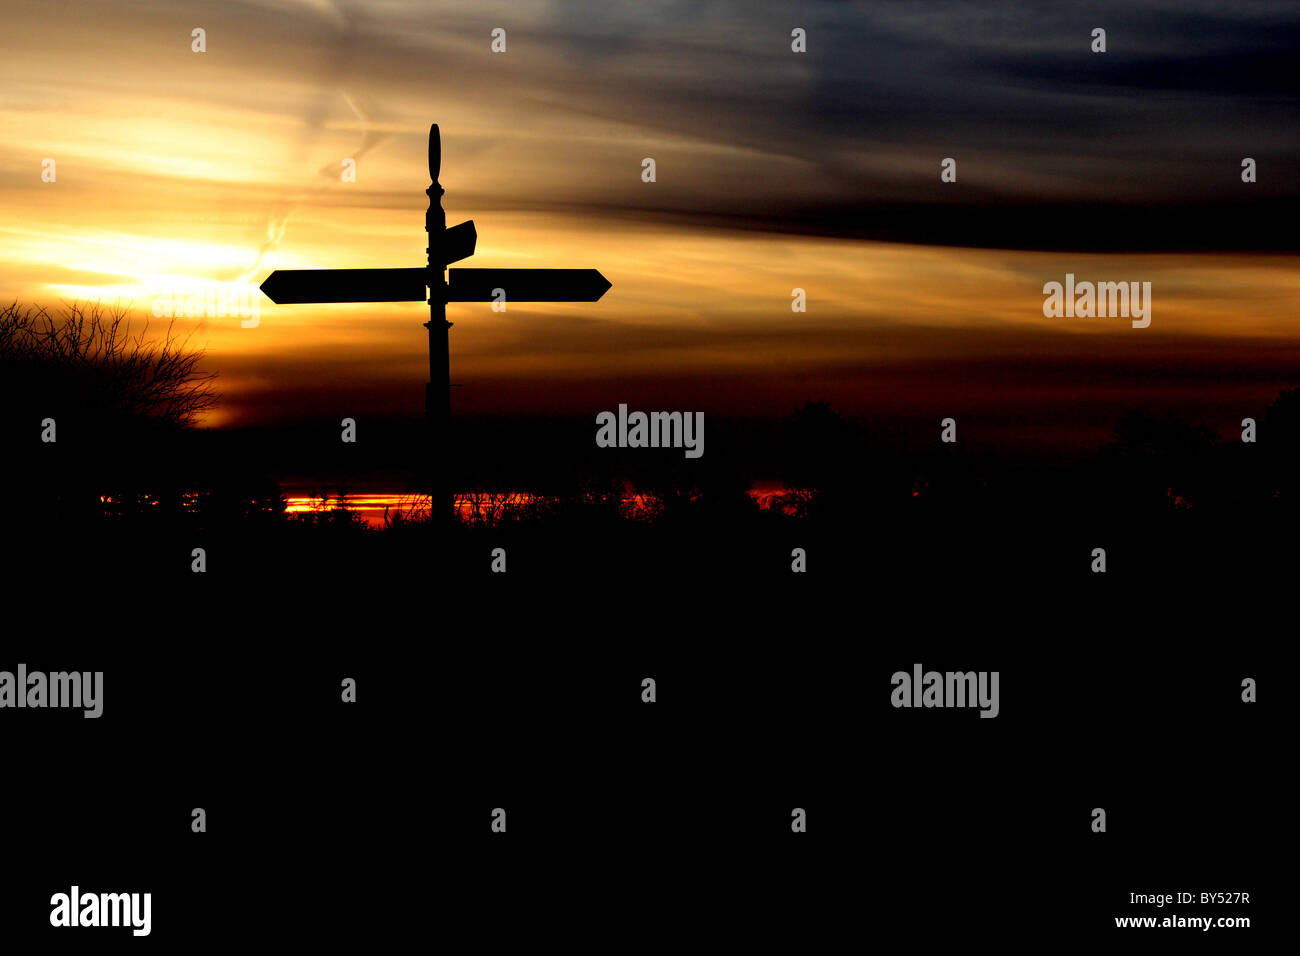 silhouetted crossroads signpost - Stock Image